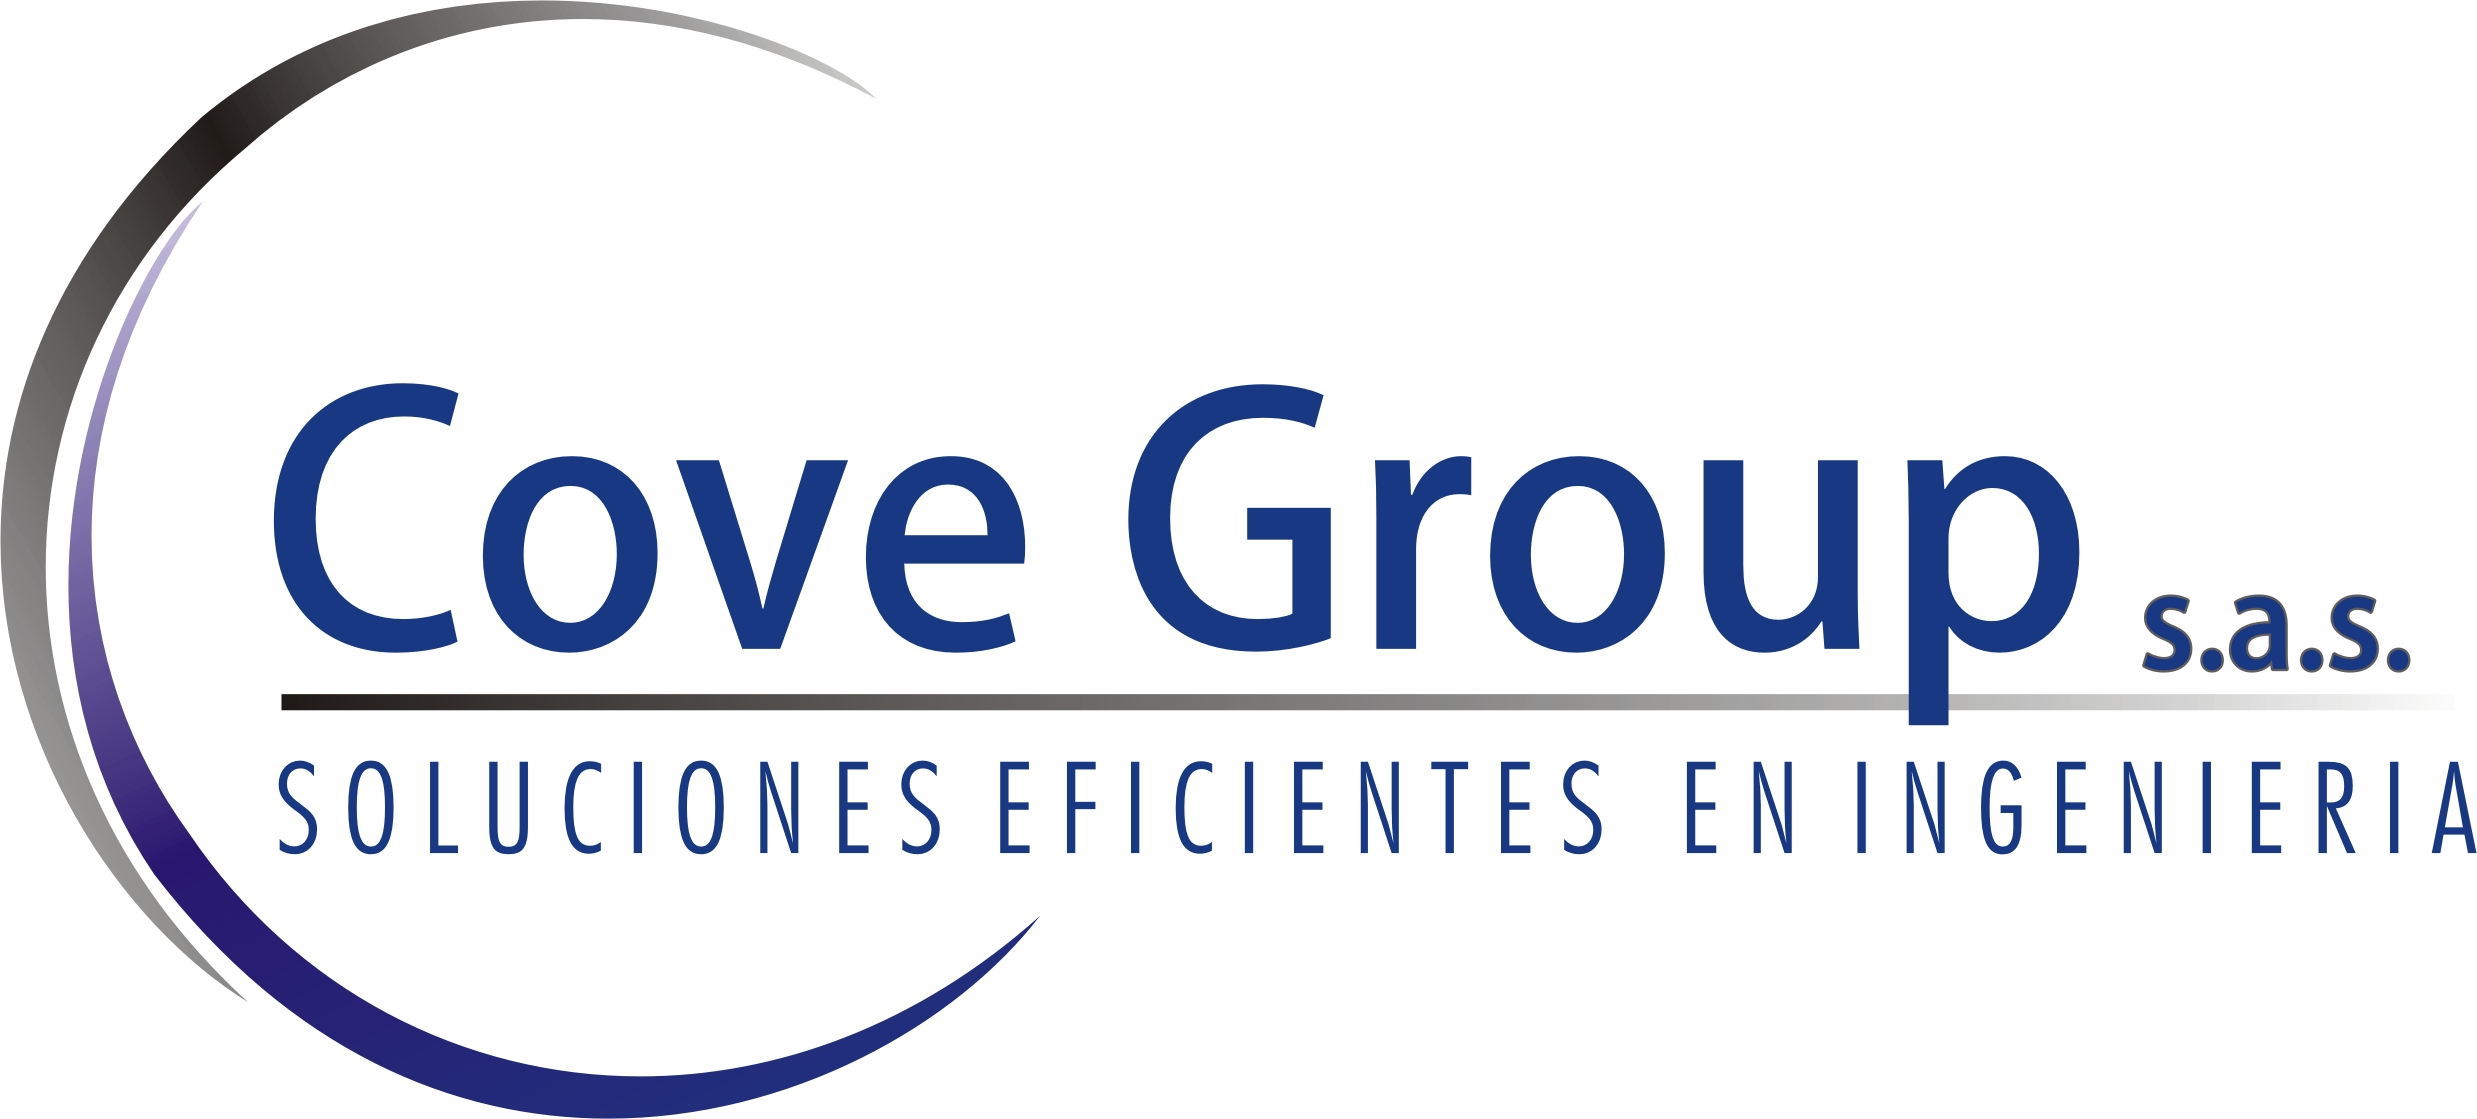 cove group